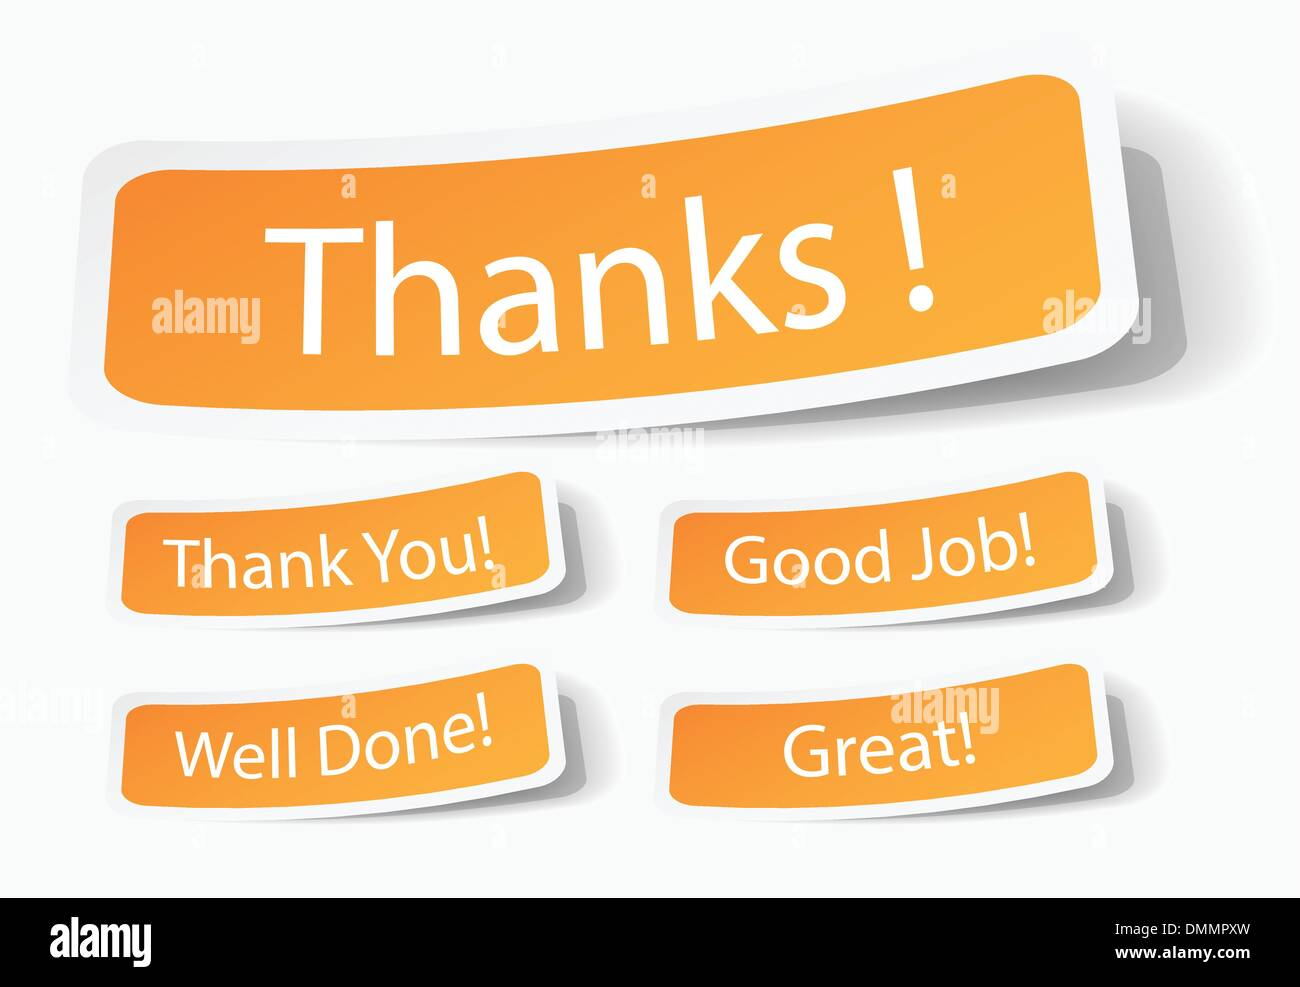 Thank You Notes As Stickers - Stock Image